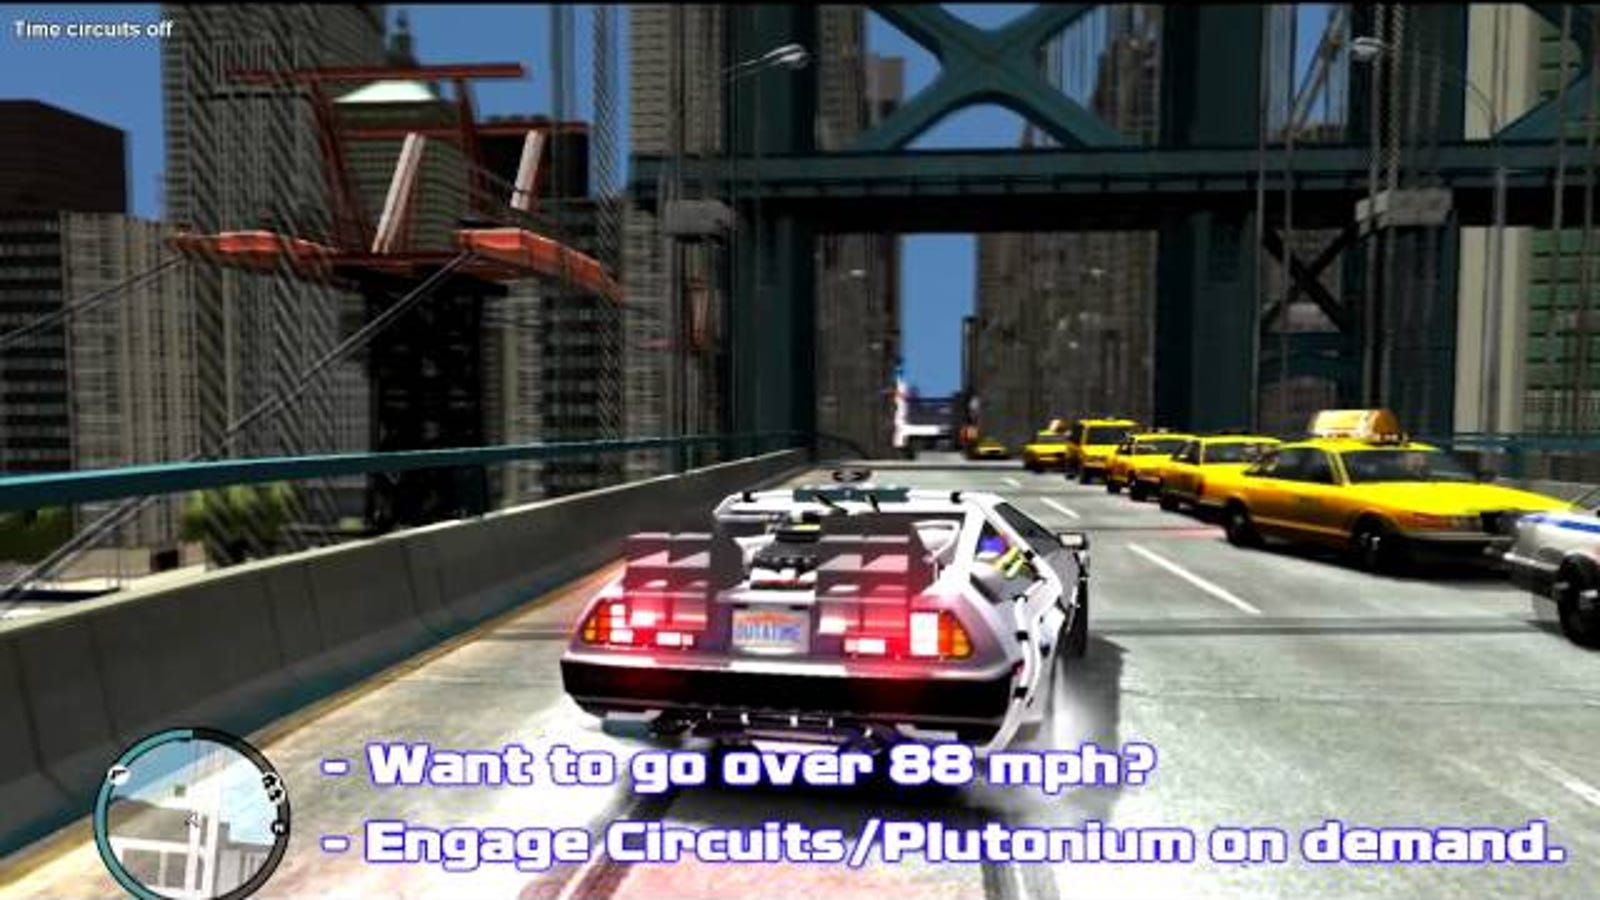 Check Out This Insanely Cool GTA IV Mod That Lets You Time